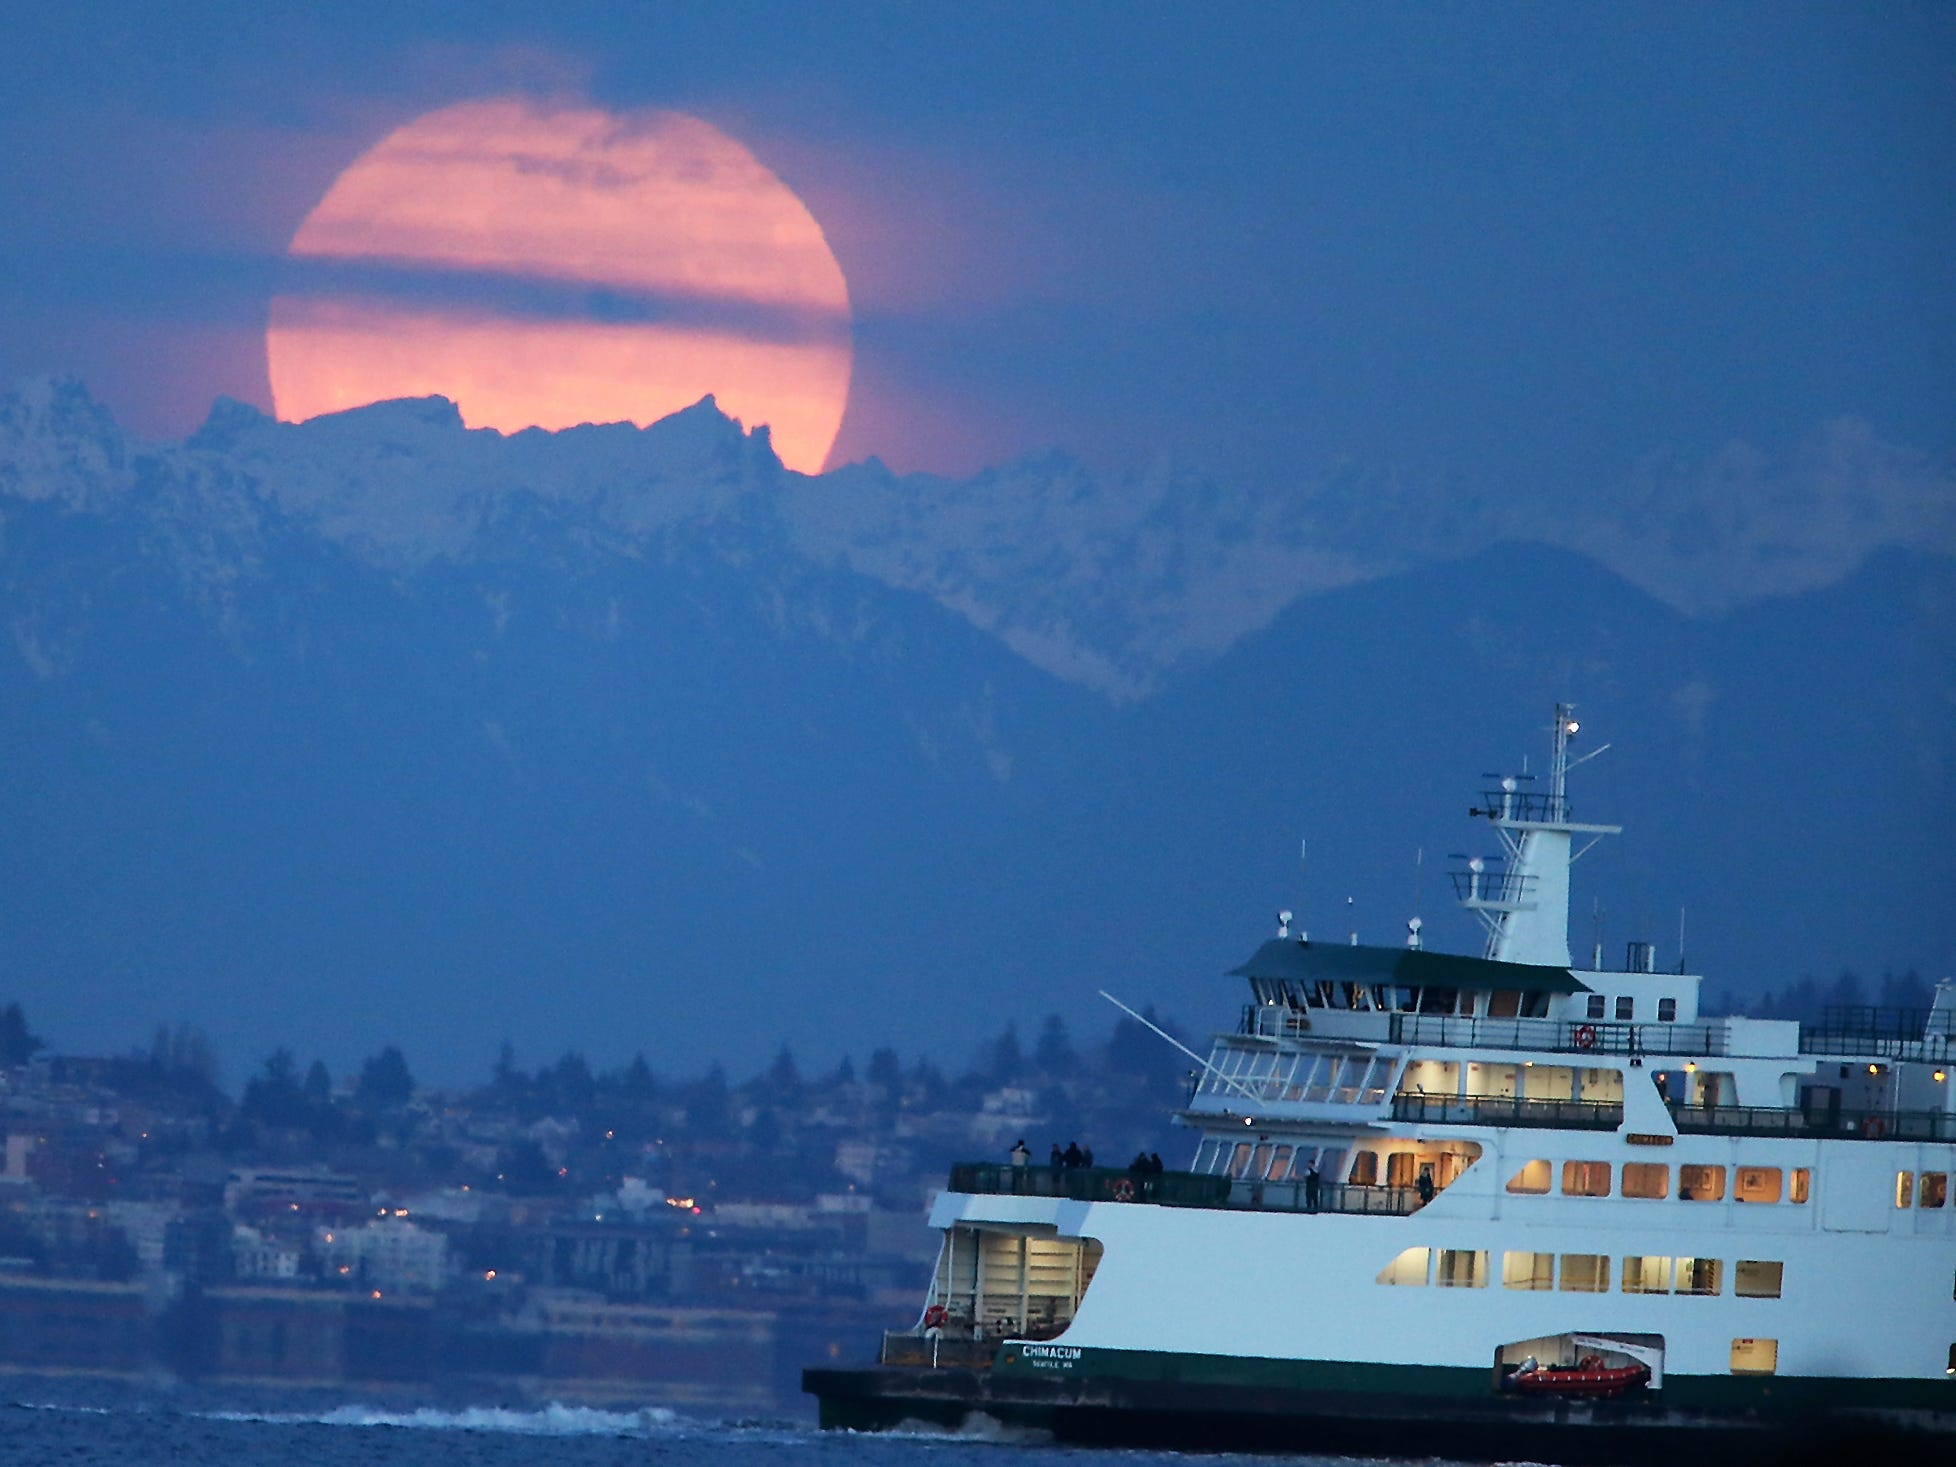 The supermoon rises behind the clouds and the Cascade Mountains as the Washington State Ferry Chimacum heads to Seattle from Bremerton, on Monday, Jan. 1, 2018 in Manchester, Washington.